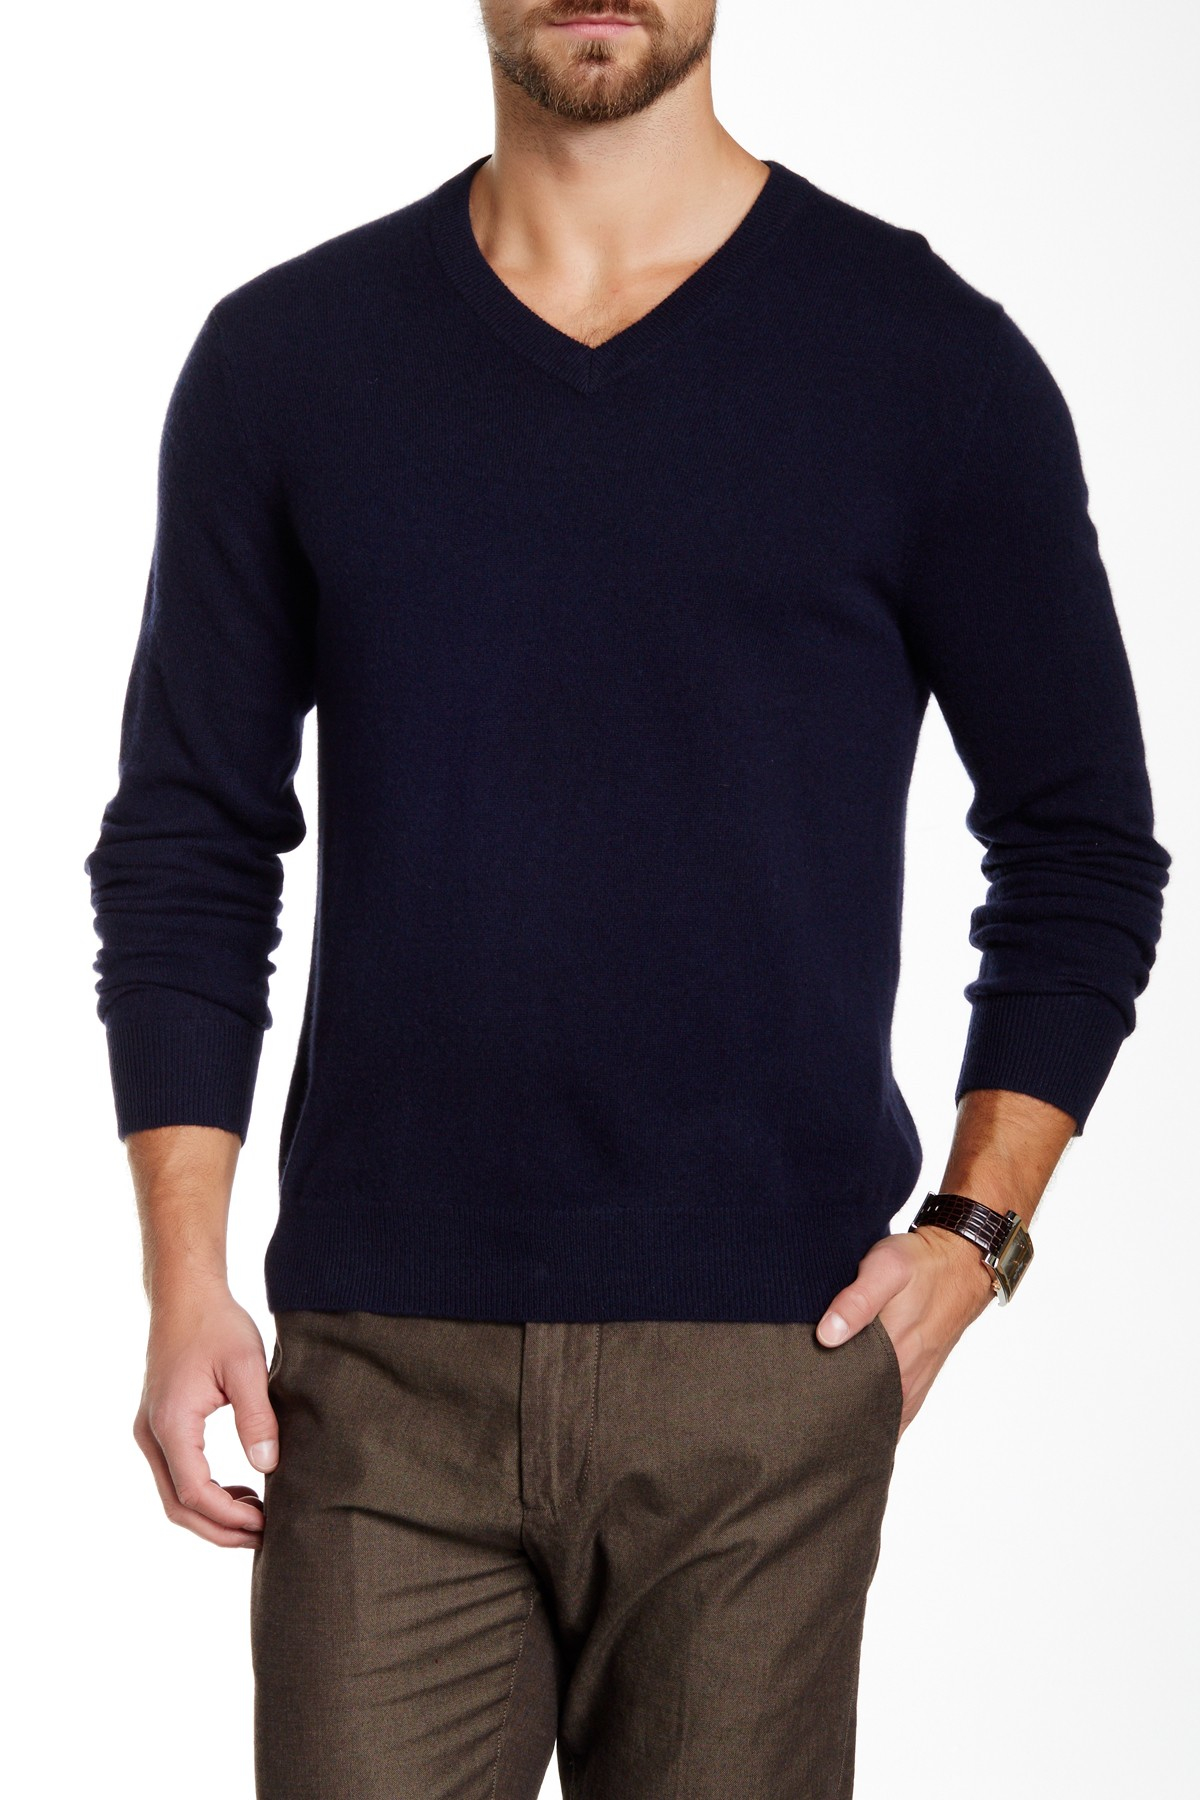 Shop blue cashmere v neck sweater at Neiman Marcus, where you will find free shipping on the latest in fashion from top designers.